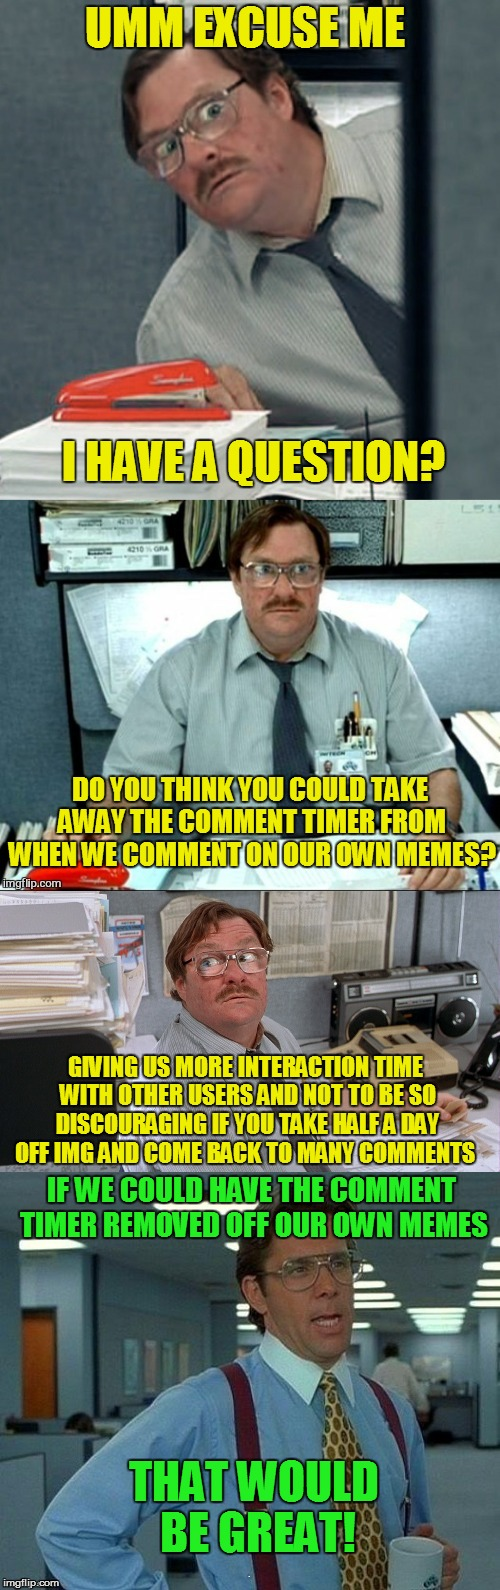 To The Mods And Whom It May Concern! ( Error: You're commenting a lot! Wait 168 seconds ) | UMM EXCUSE ME I HAVE A QUESTION? DO YOU THINK YOU COULD TAKE AWAY THE COMMENT TIMER FROM WHEN WE COMMENT ON OUR OWN MEMES? GIVING US MORE IN | image tagged in comment timer,remove it off commenting on our personal memes,memes,imgflip mods,mods,please and thank you | made w/ Imgflip meme maker